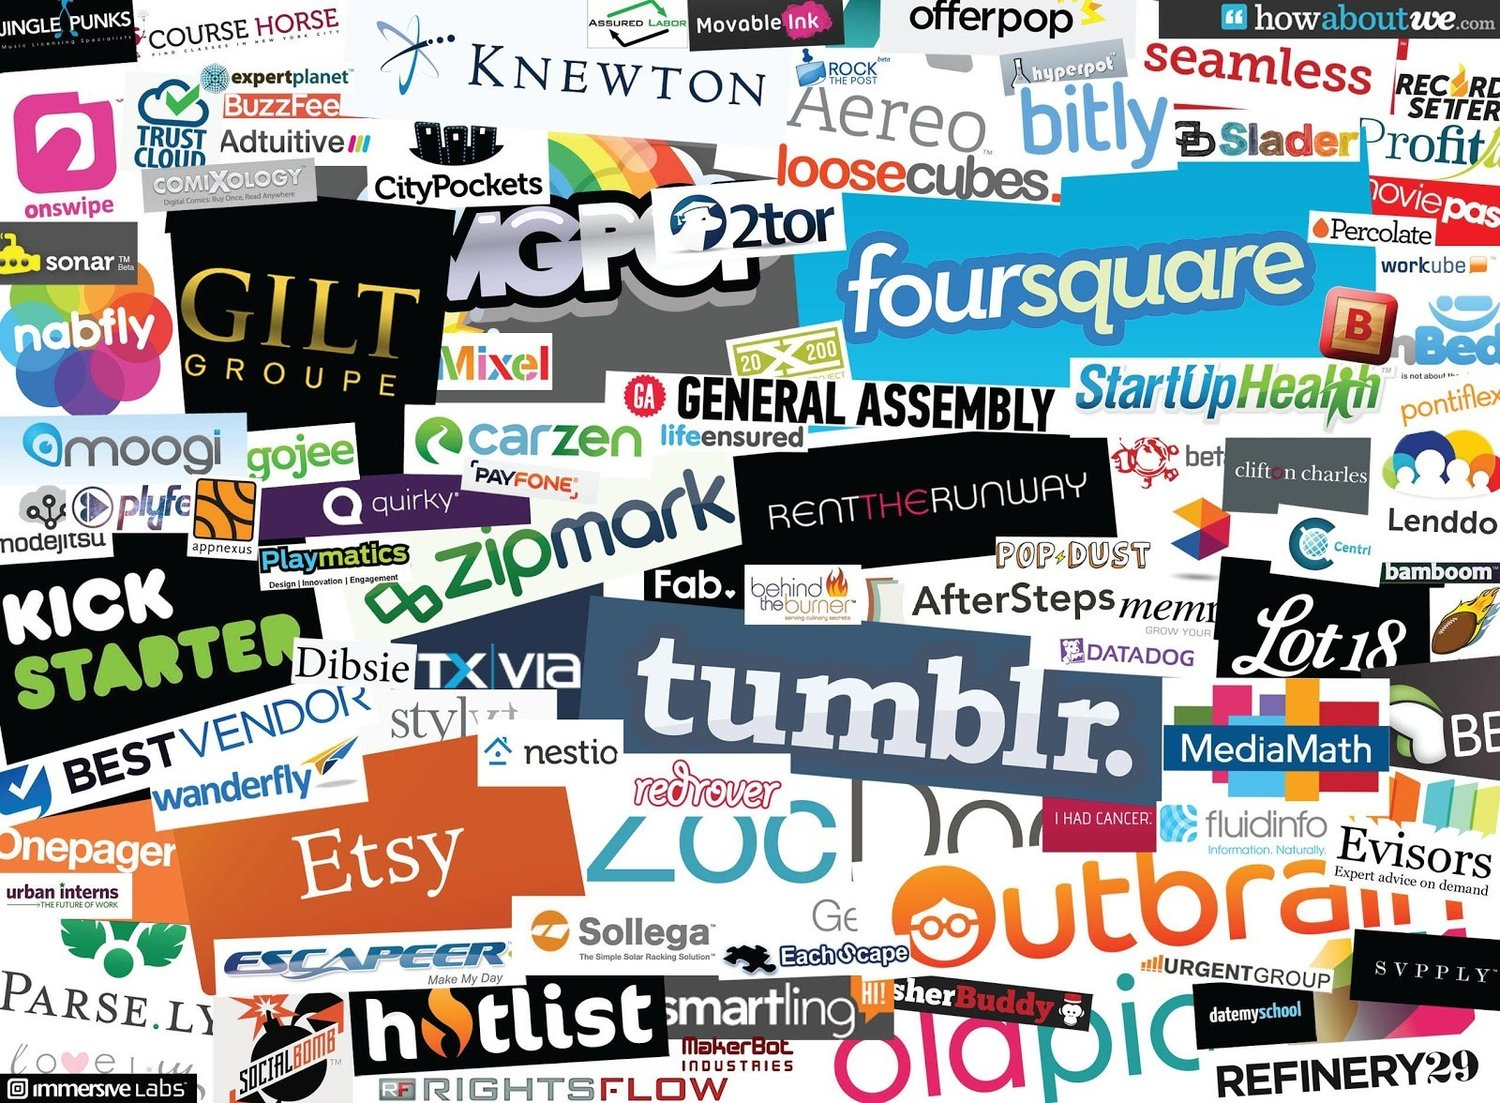 tech startups example image